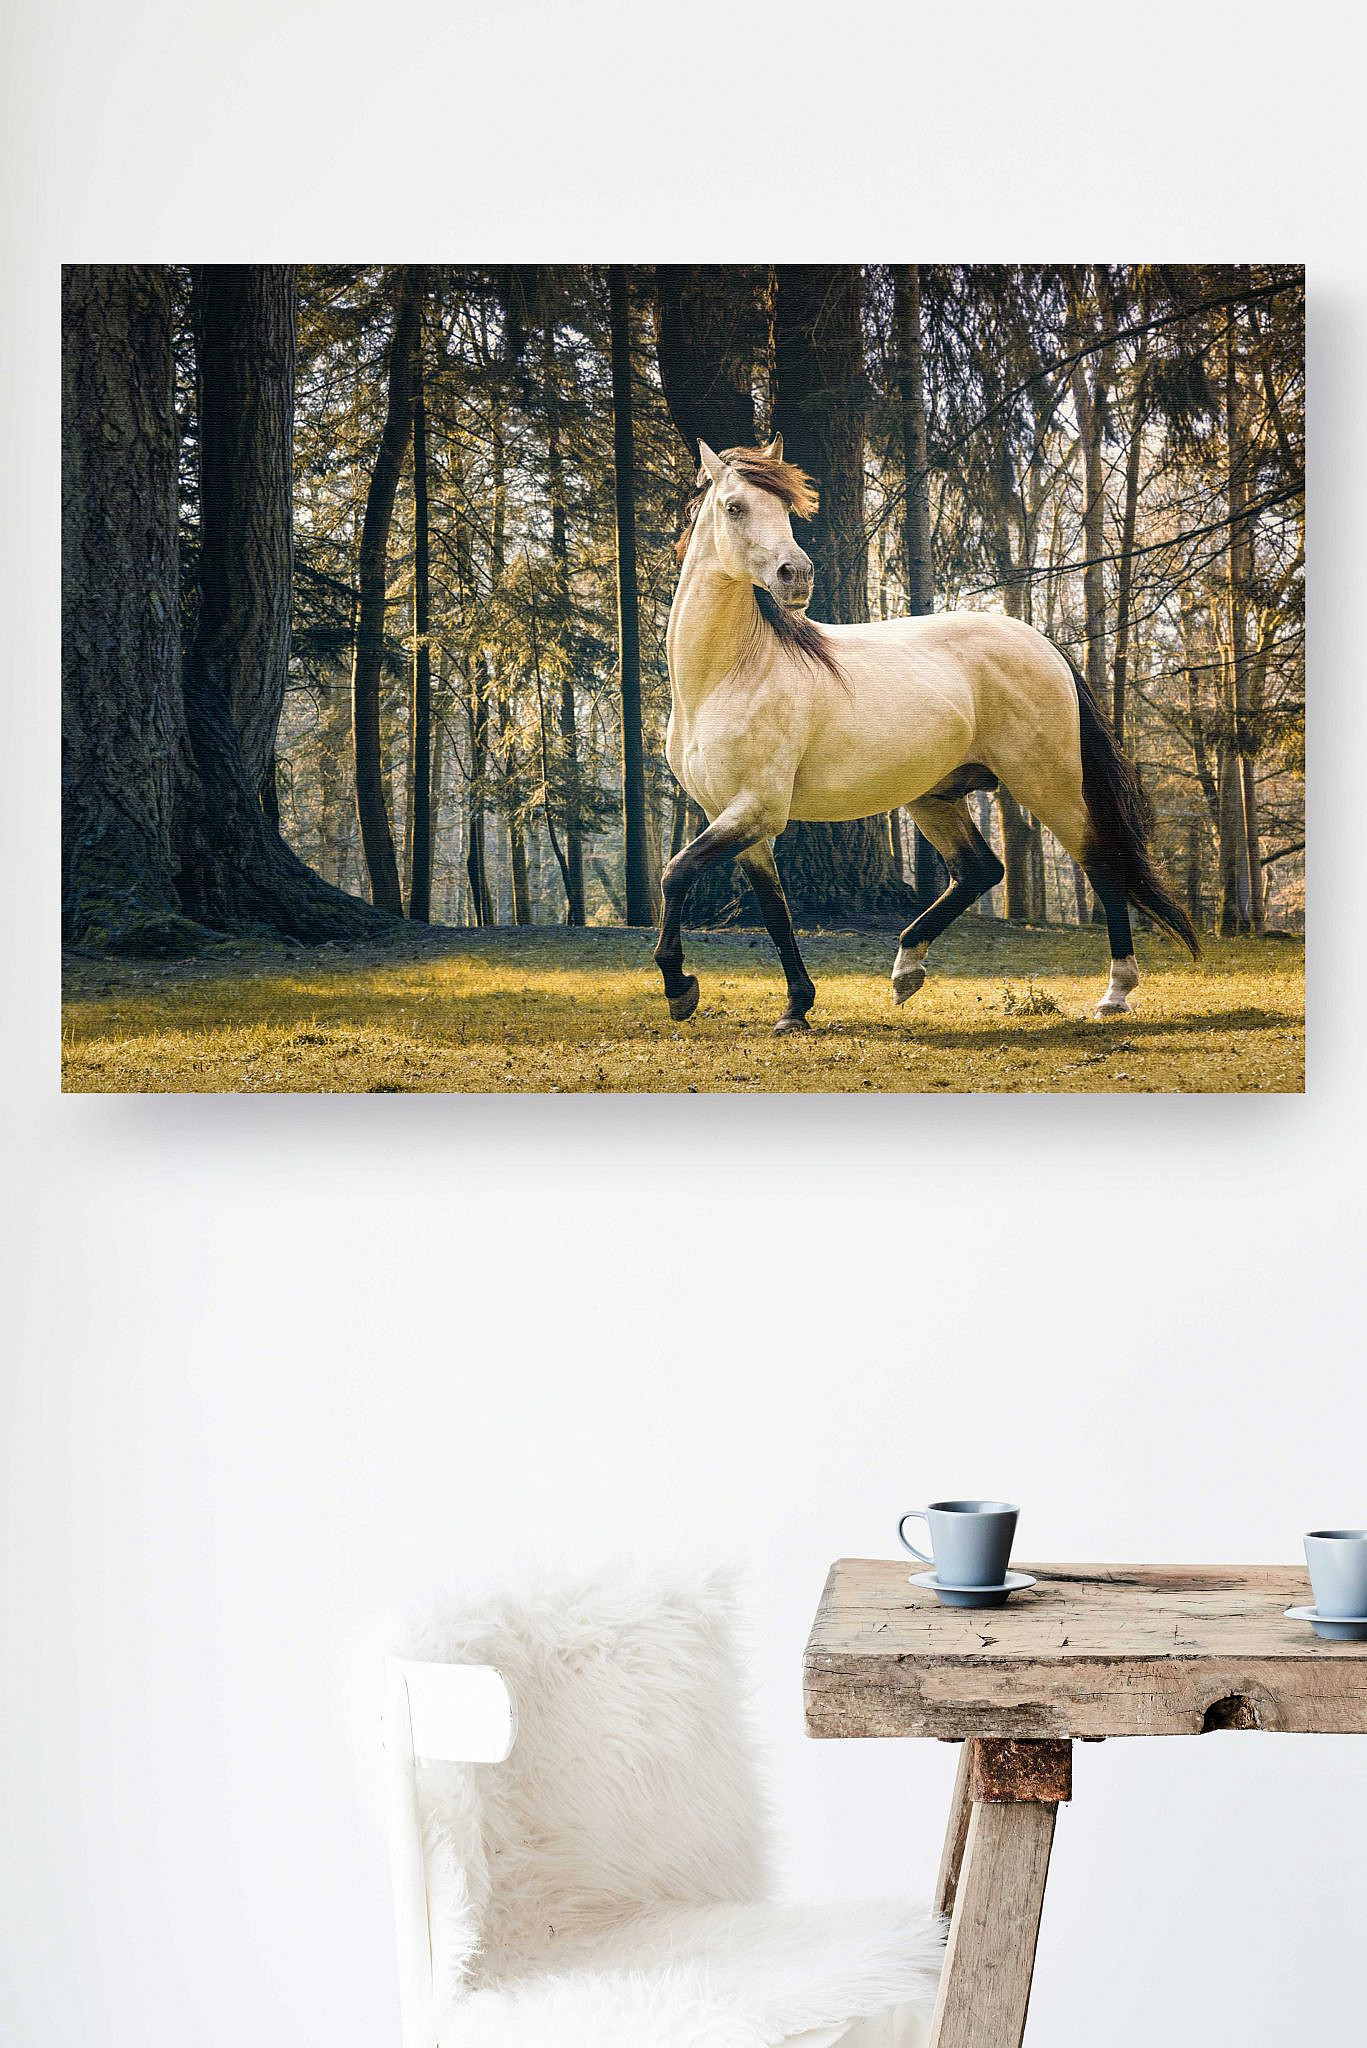 Horse prancing in the woods - Fine Art Equine Photography